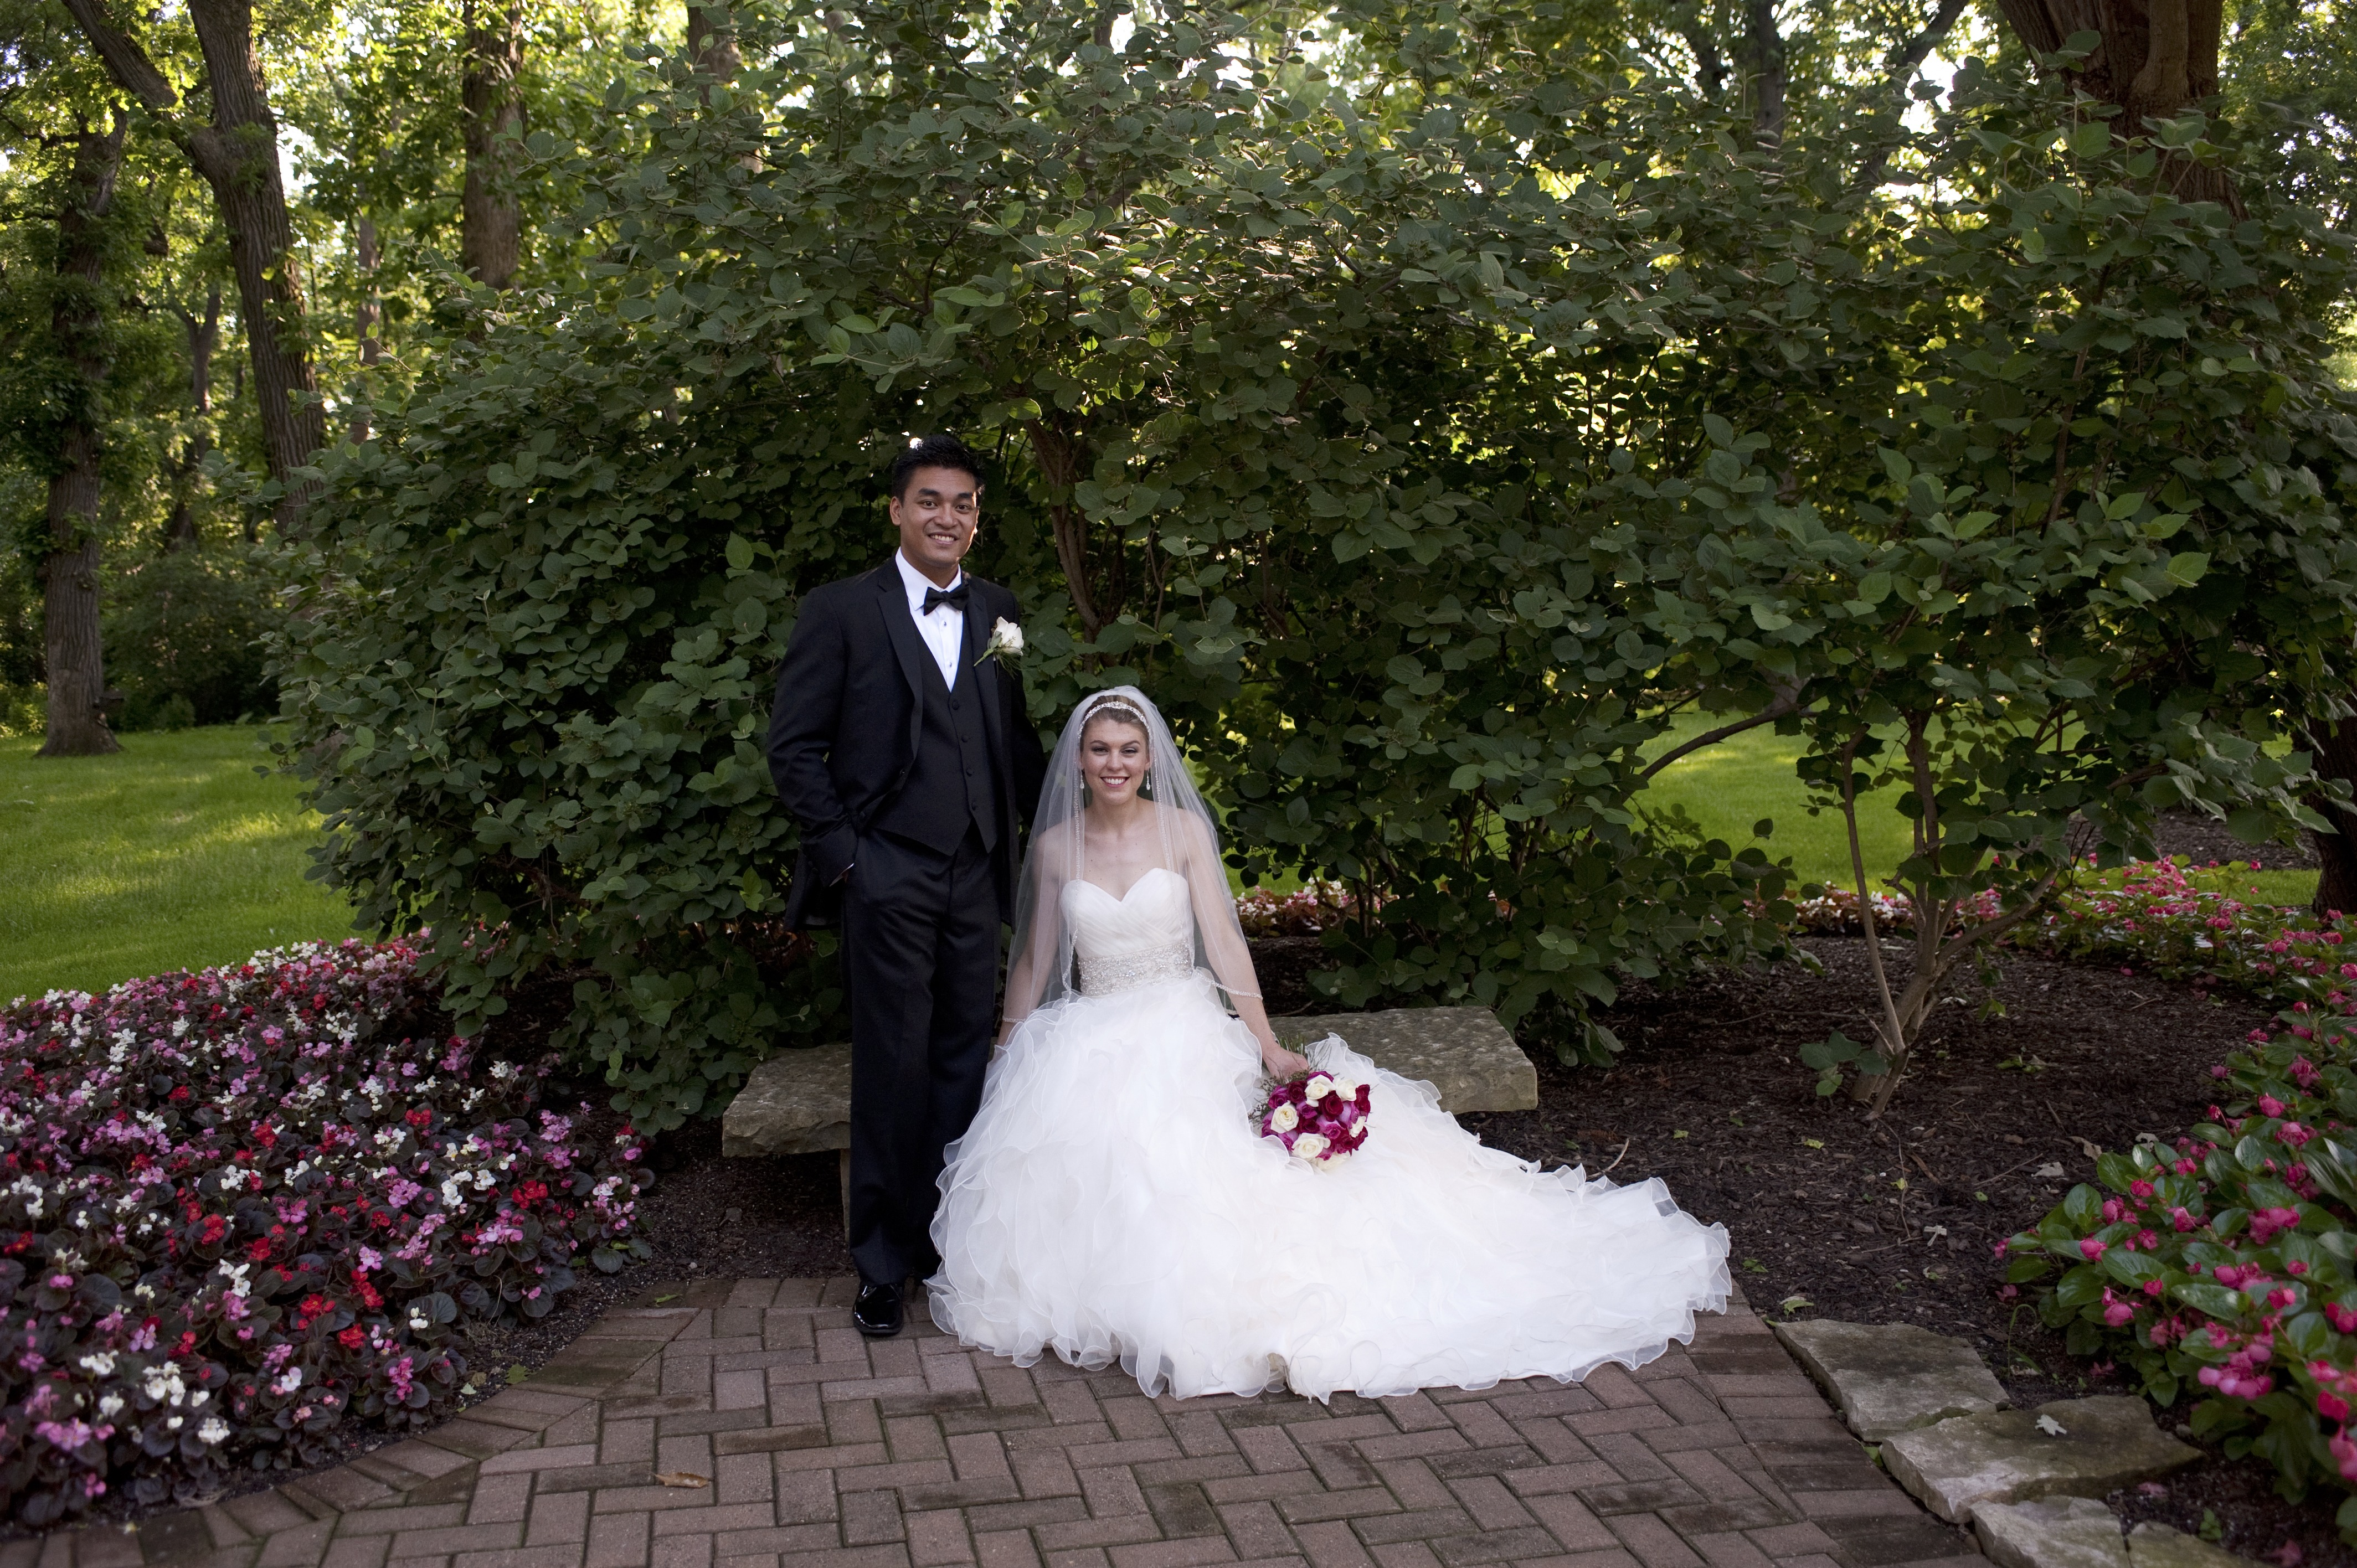 Wedding-Studio-Schaumburg-Illinois-z3.jpg